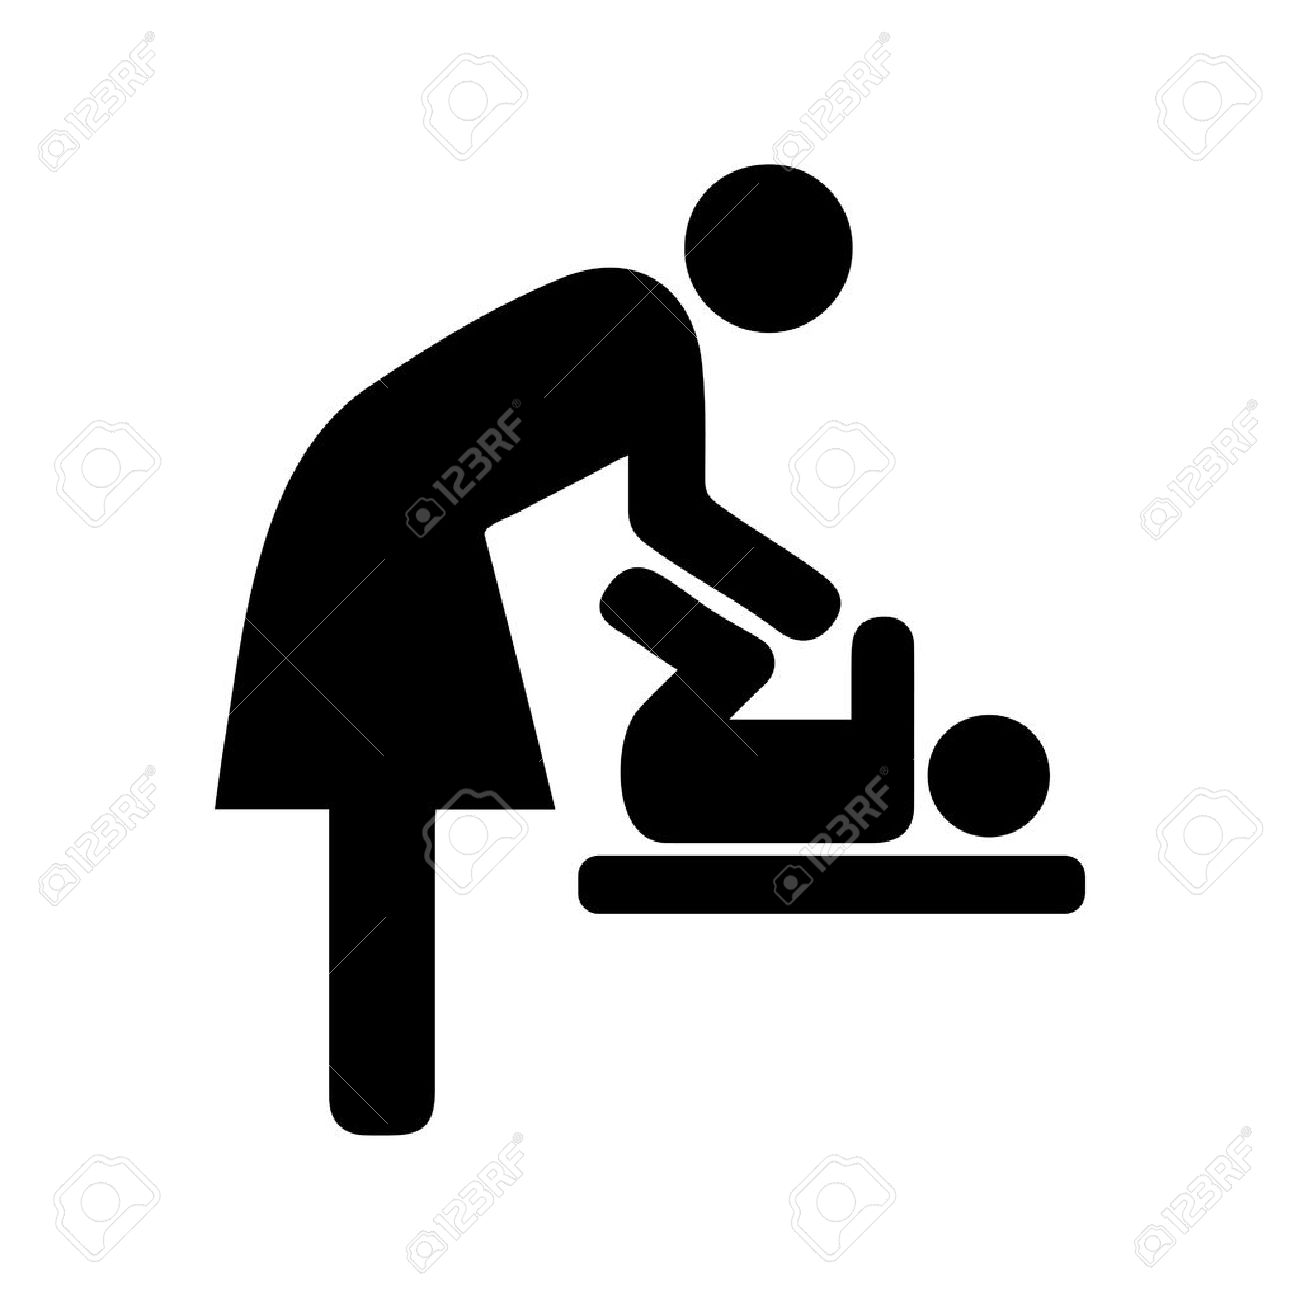 Bathroom Sign Handicap toilets iconicon, toilet, sign, man, baby, symbol, vector, room